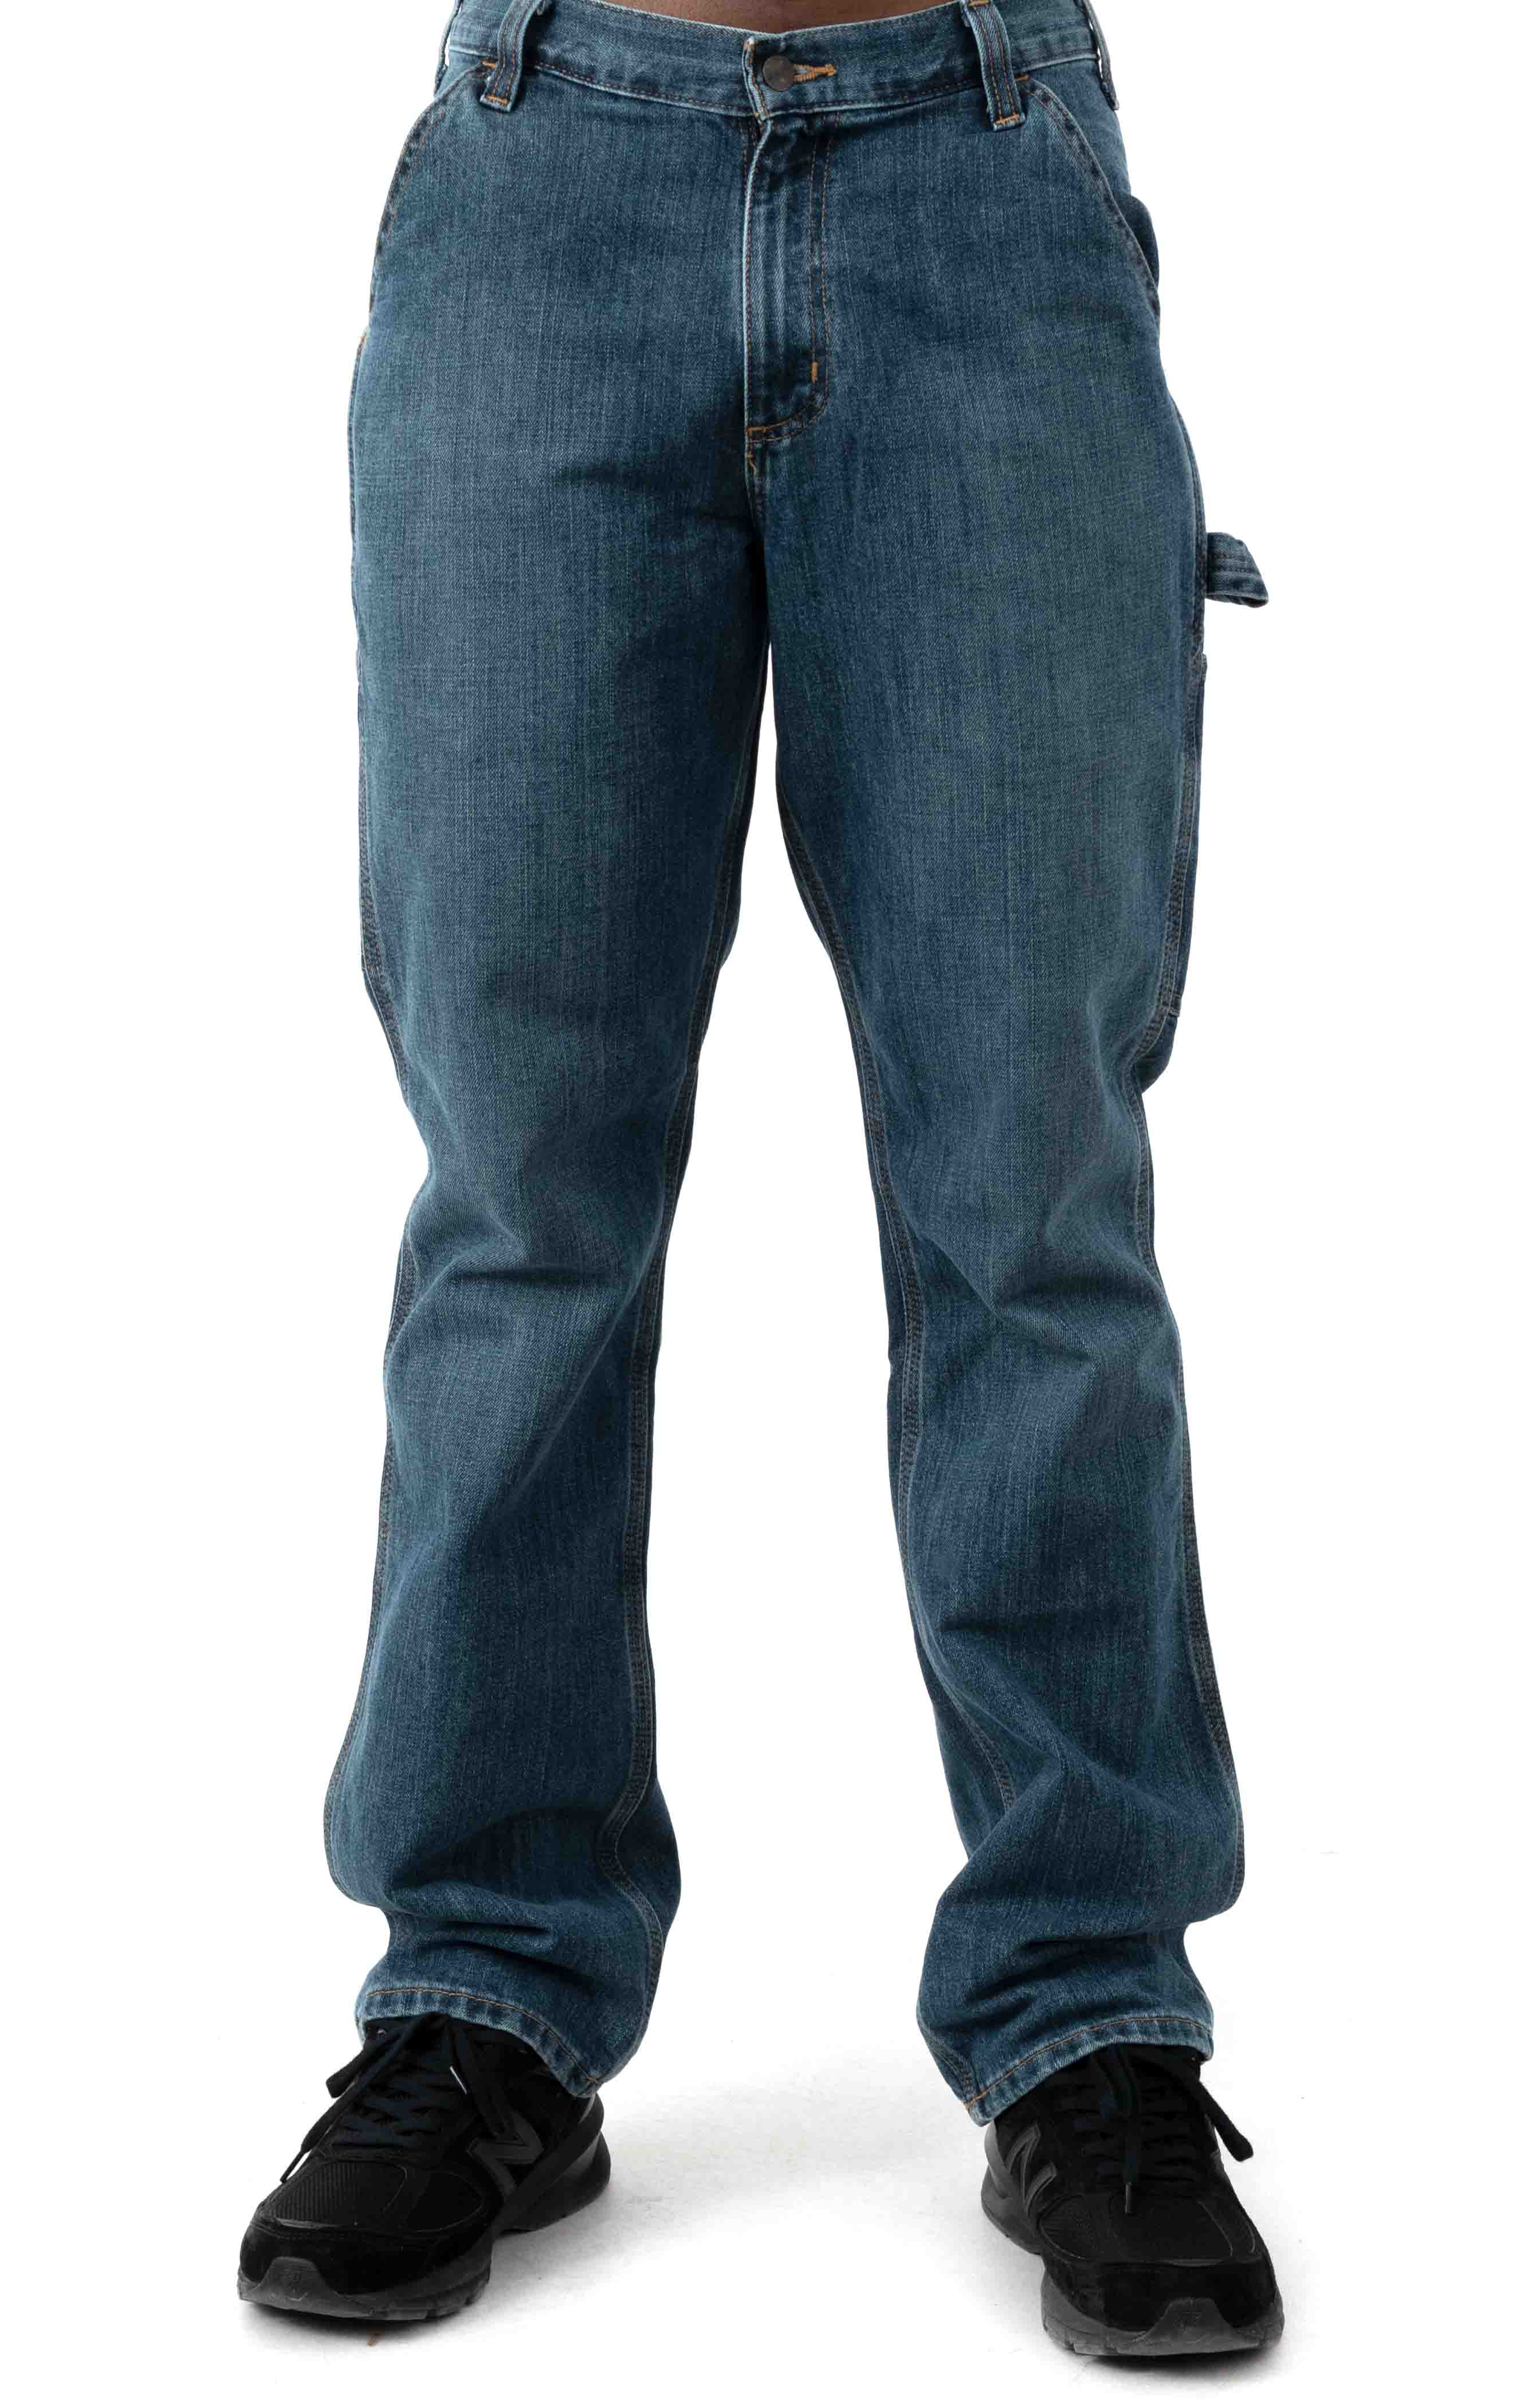 (103327) Relaxed Fit Holter Dungaree Jean - Frontier